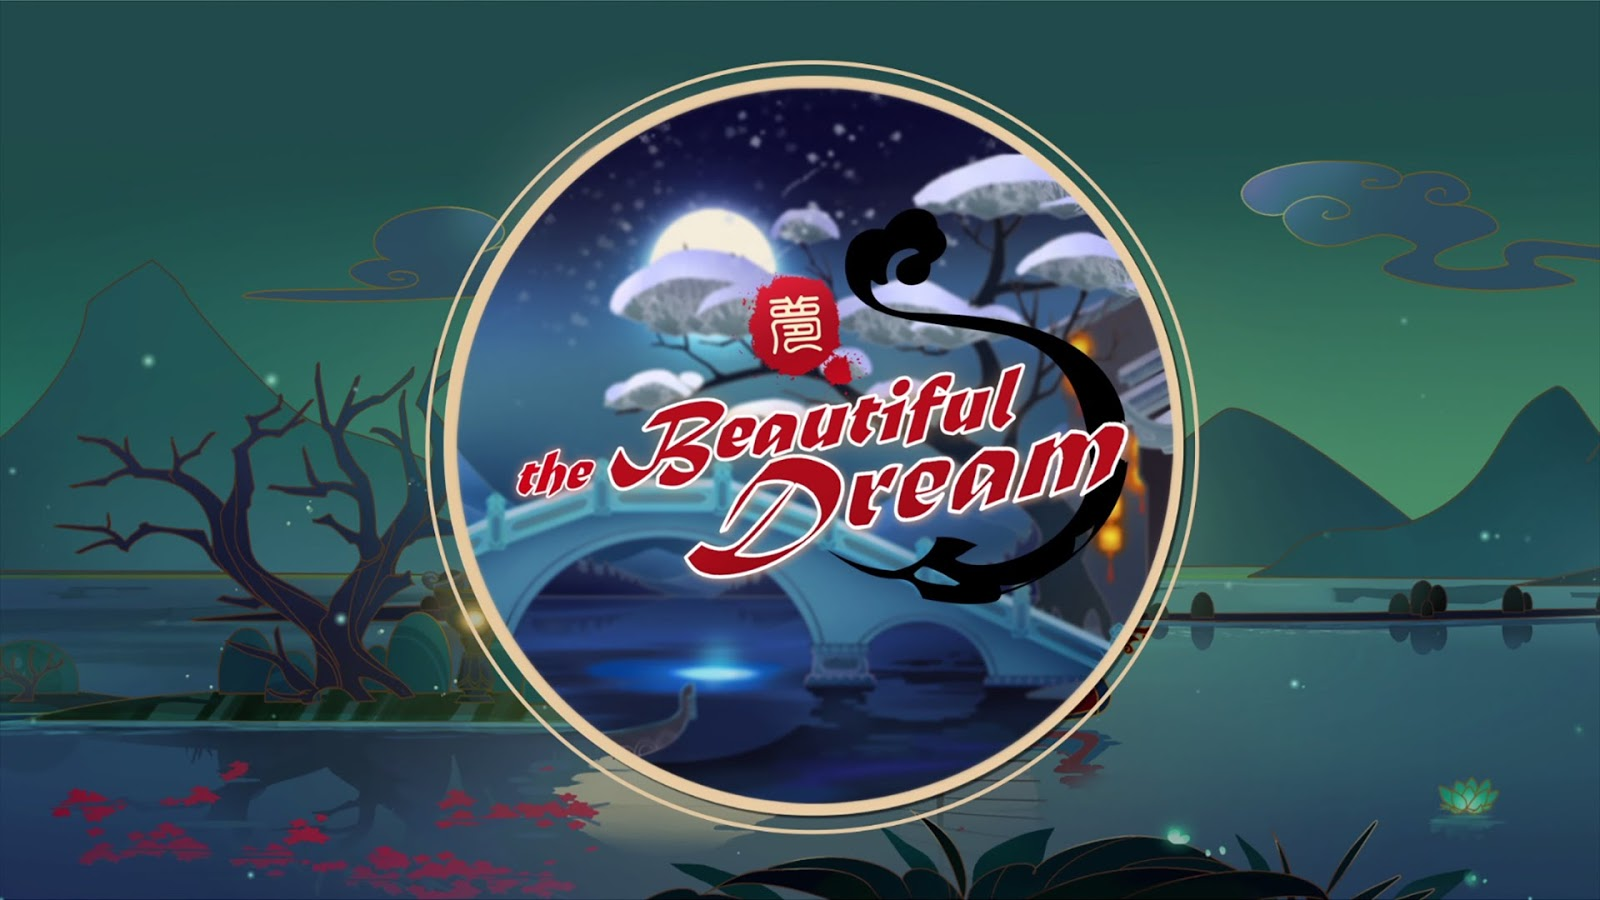 The Beautiful Dream (by NetEase) Gameplay IOS / Android